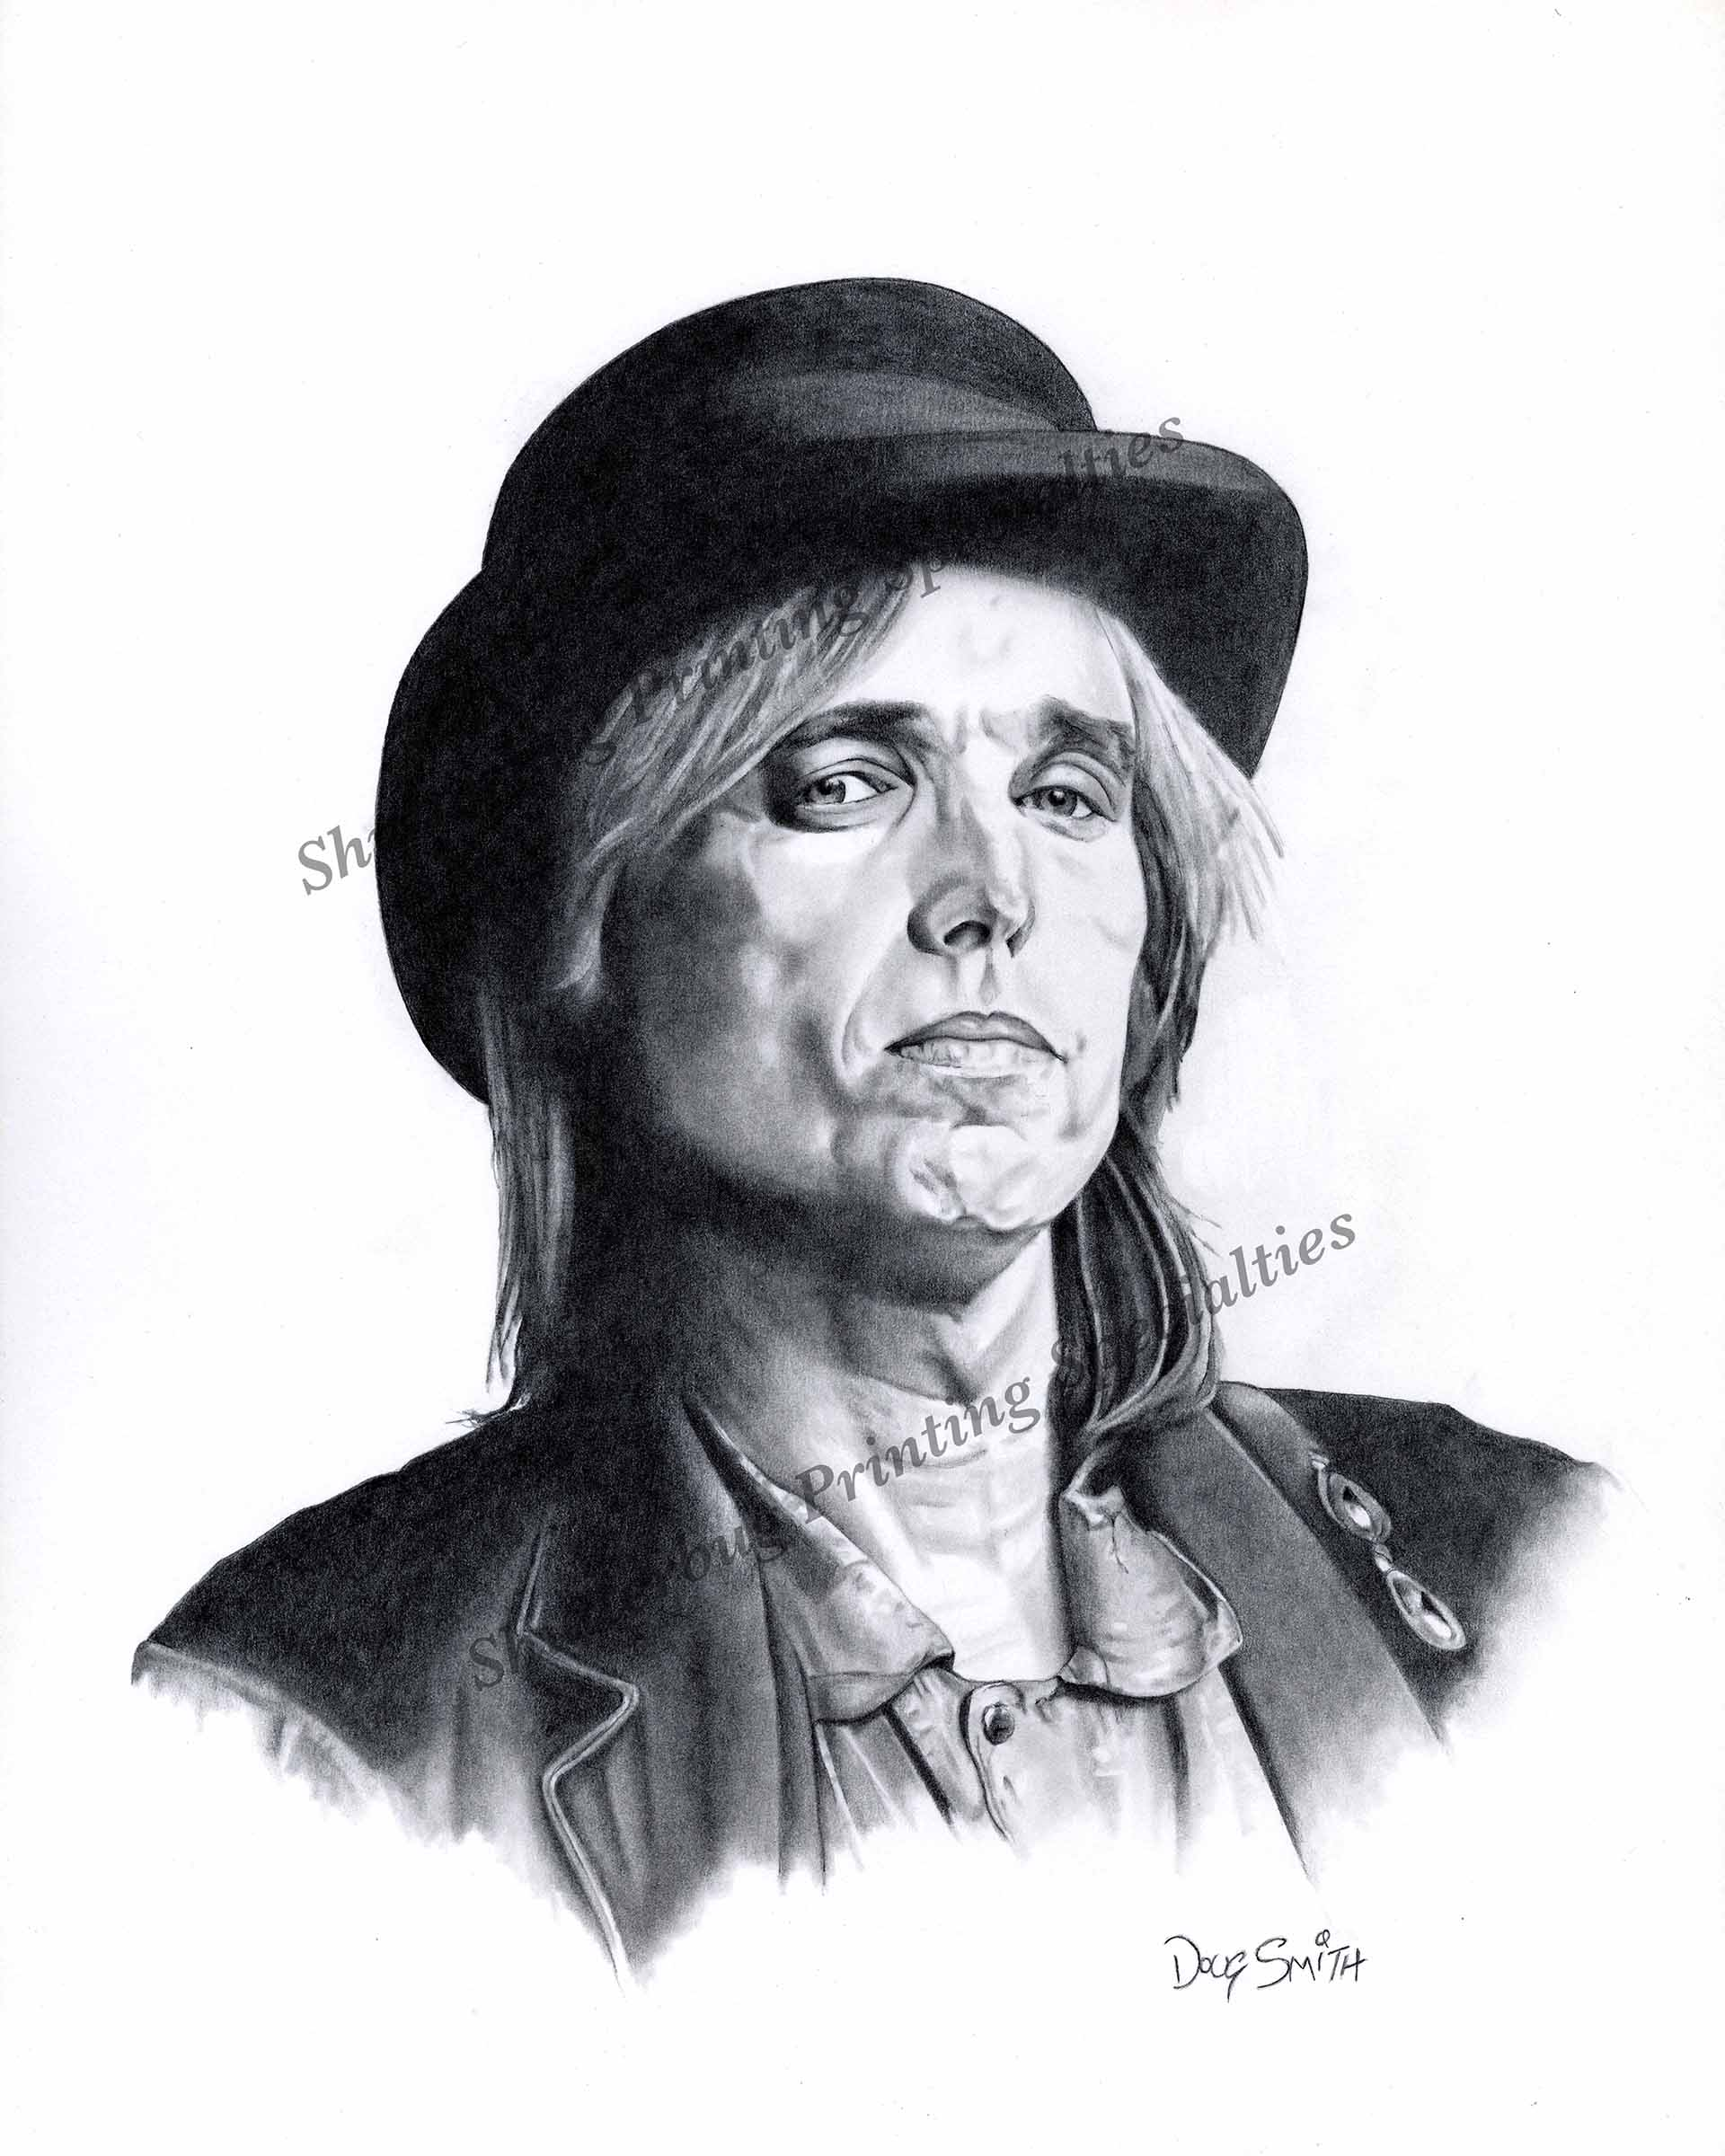 Shutterbug Printing Tom Petty: https://www.shutterbugprints.com/shop/images/tom-petty